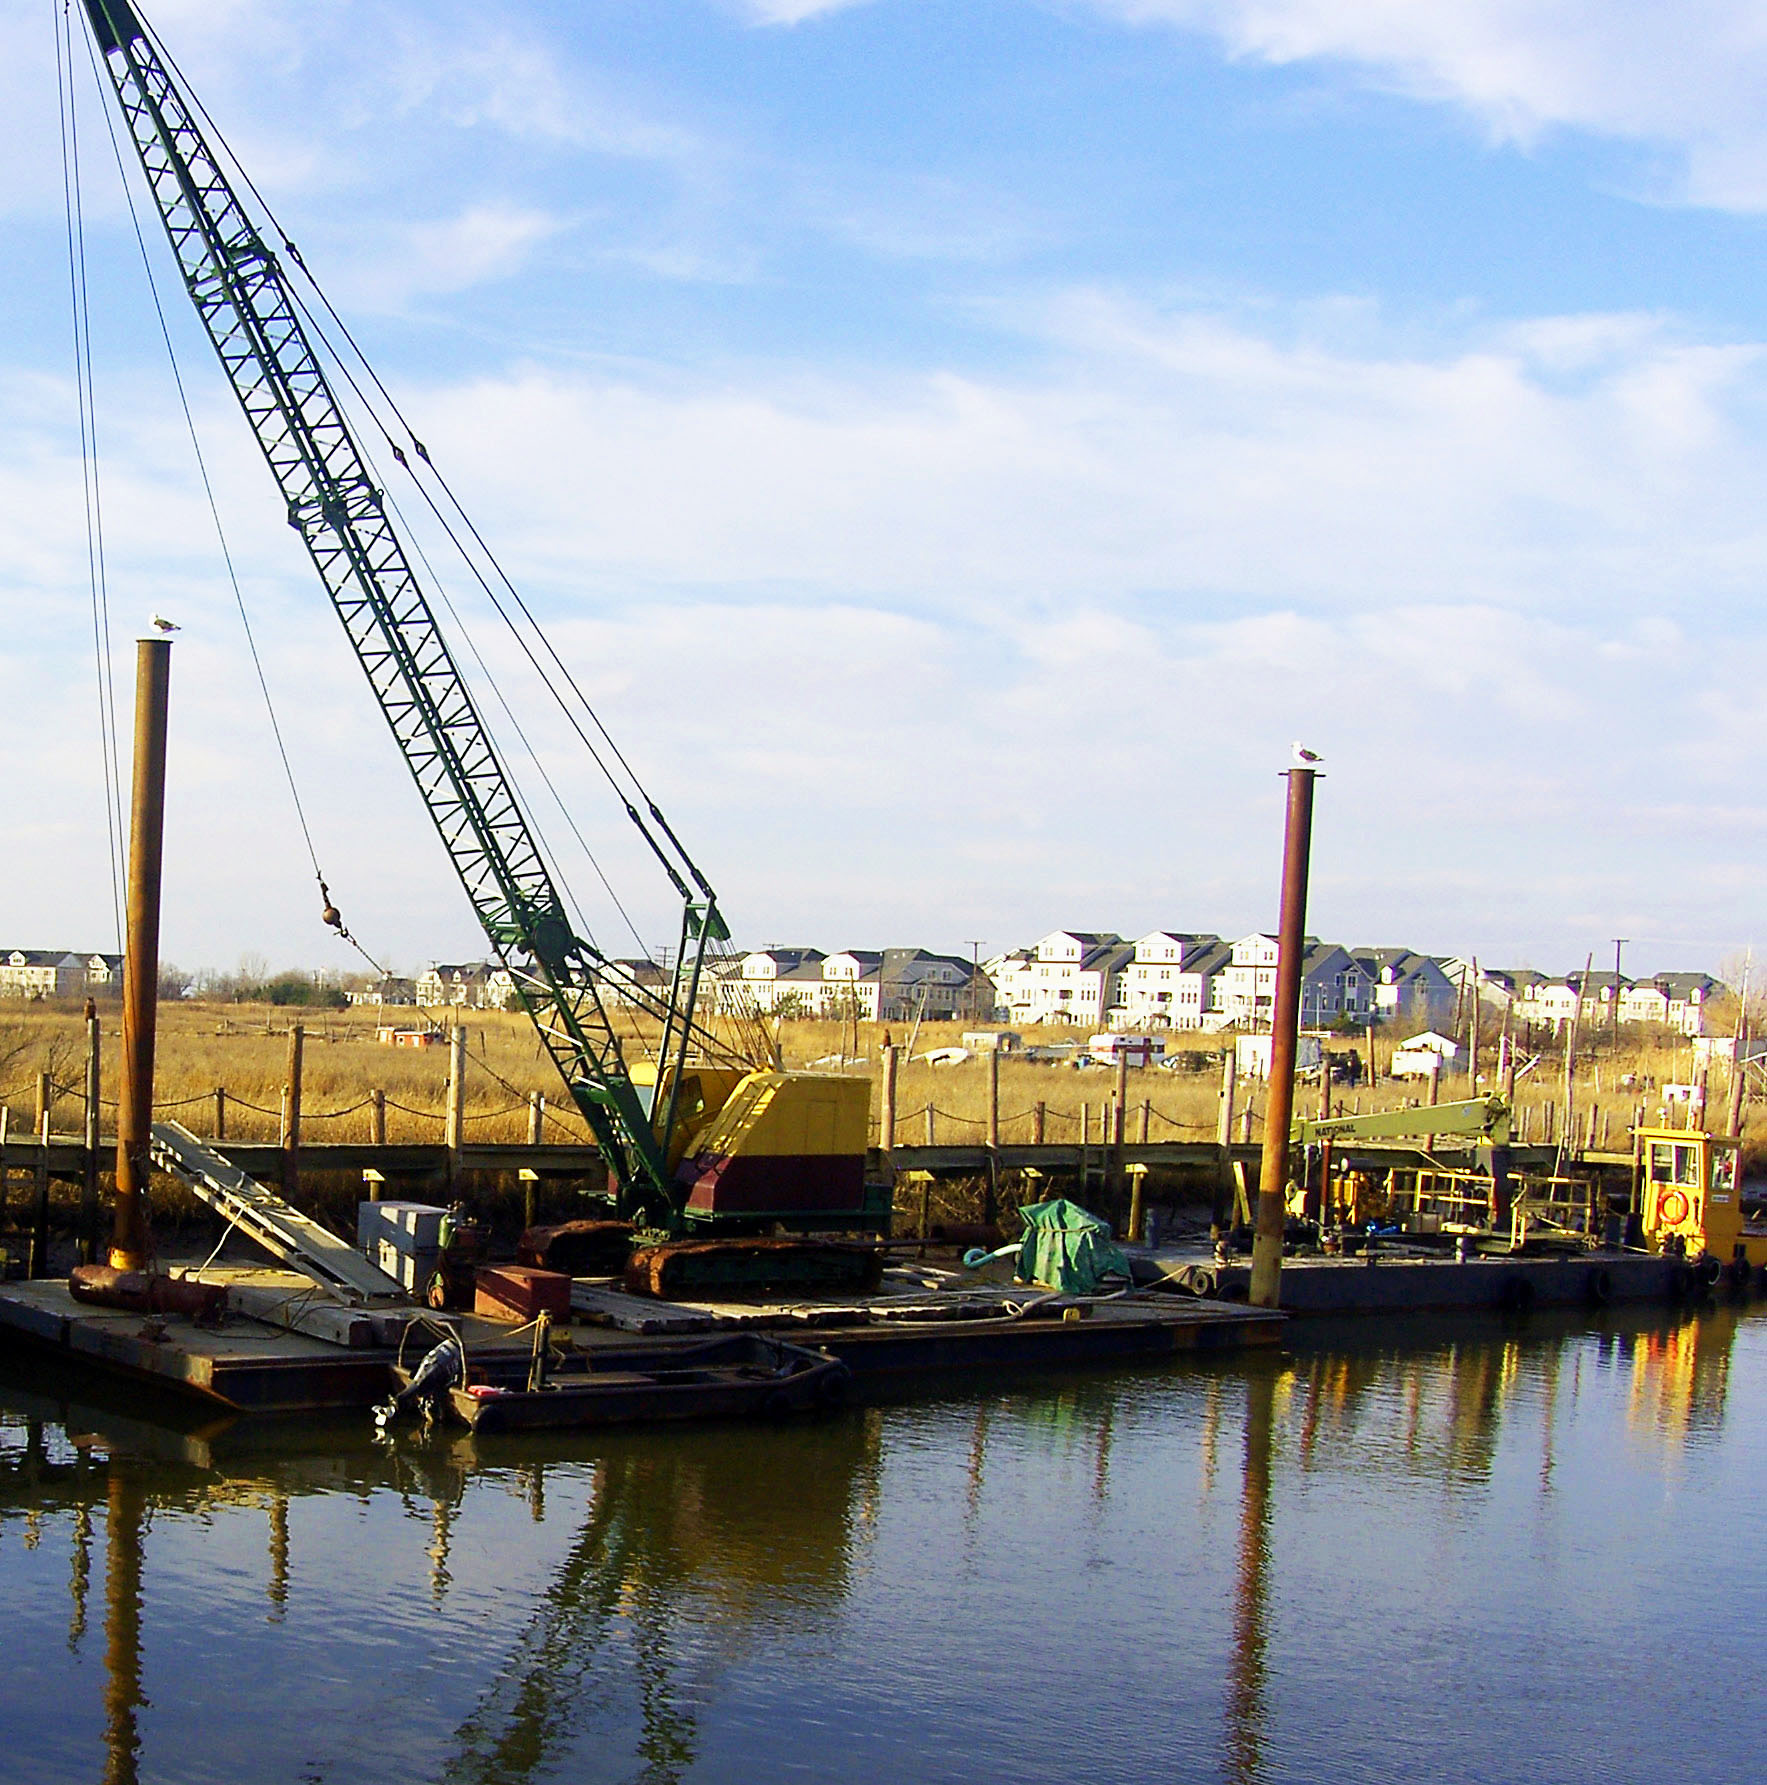 Overhead Crane New Jersey : Back bay reflections of crane on barge in new jersey